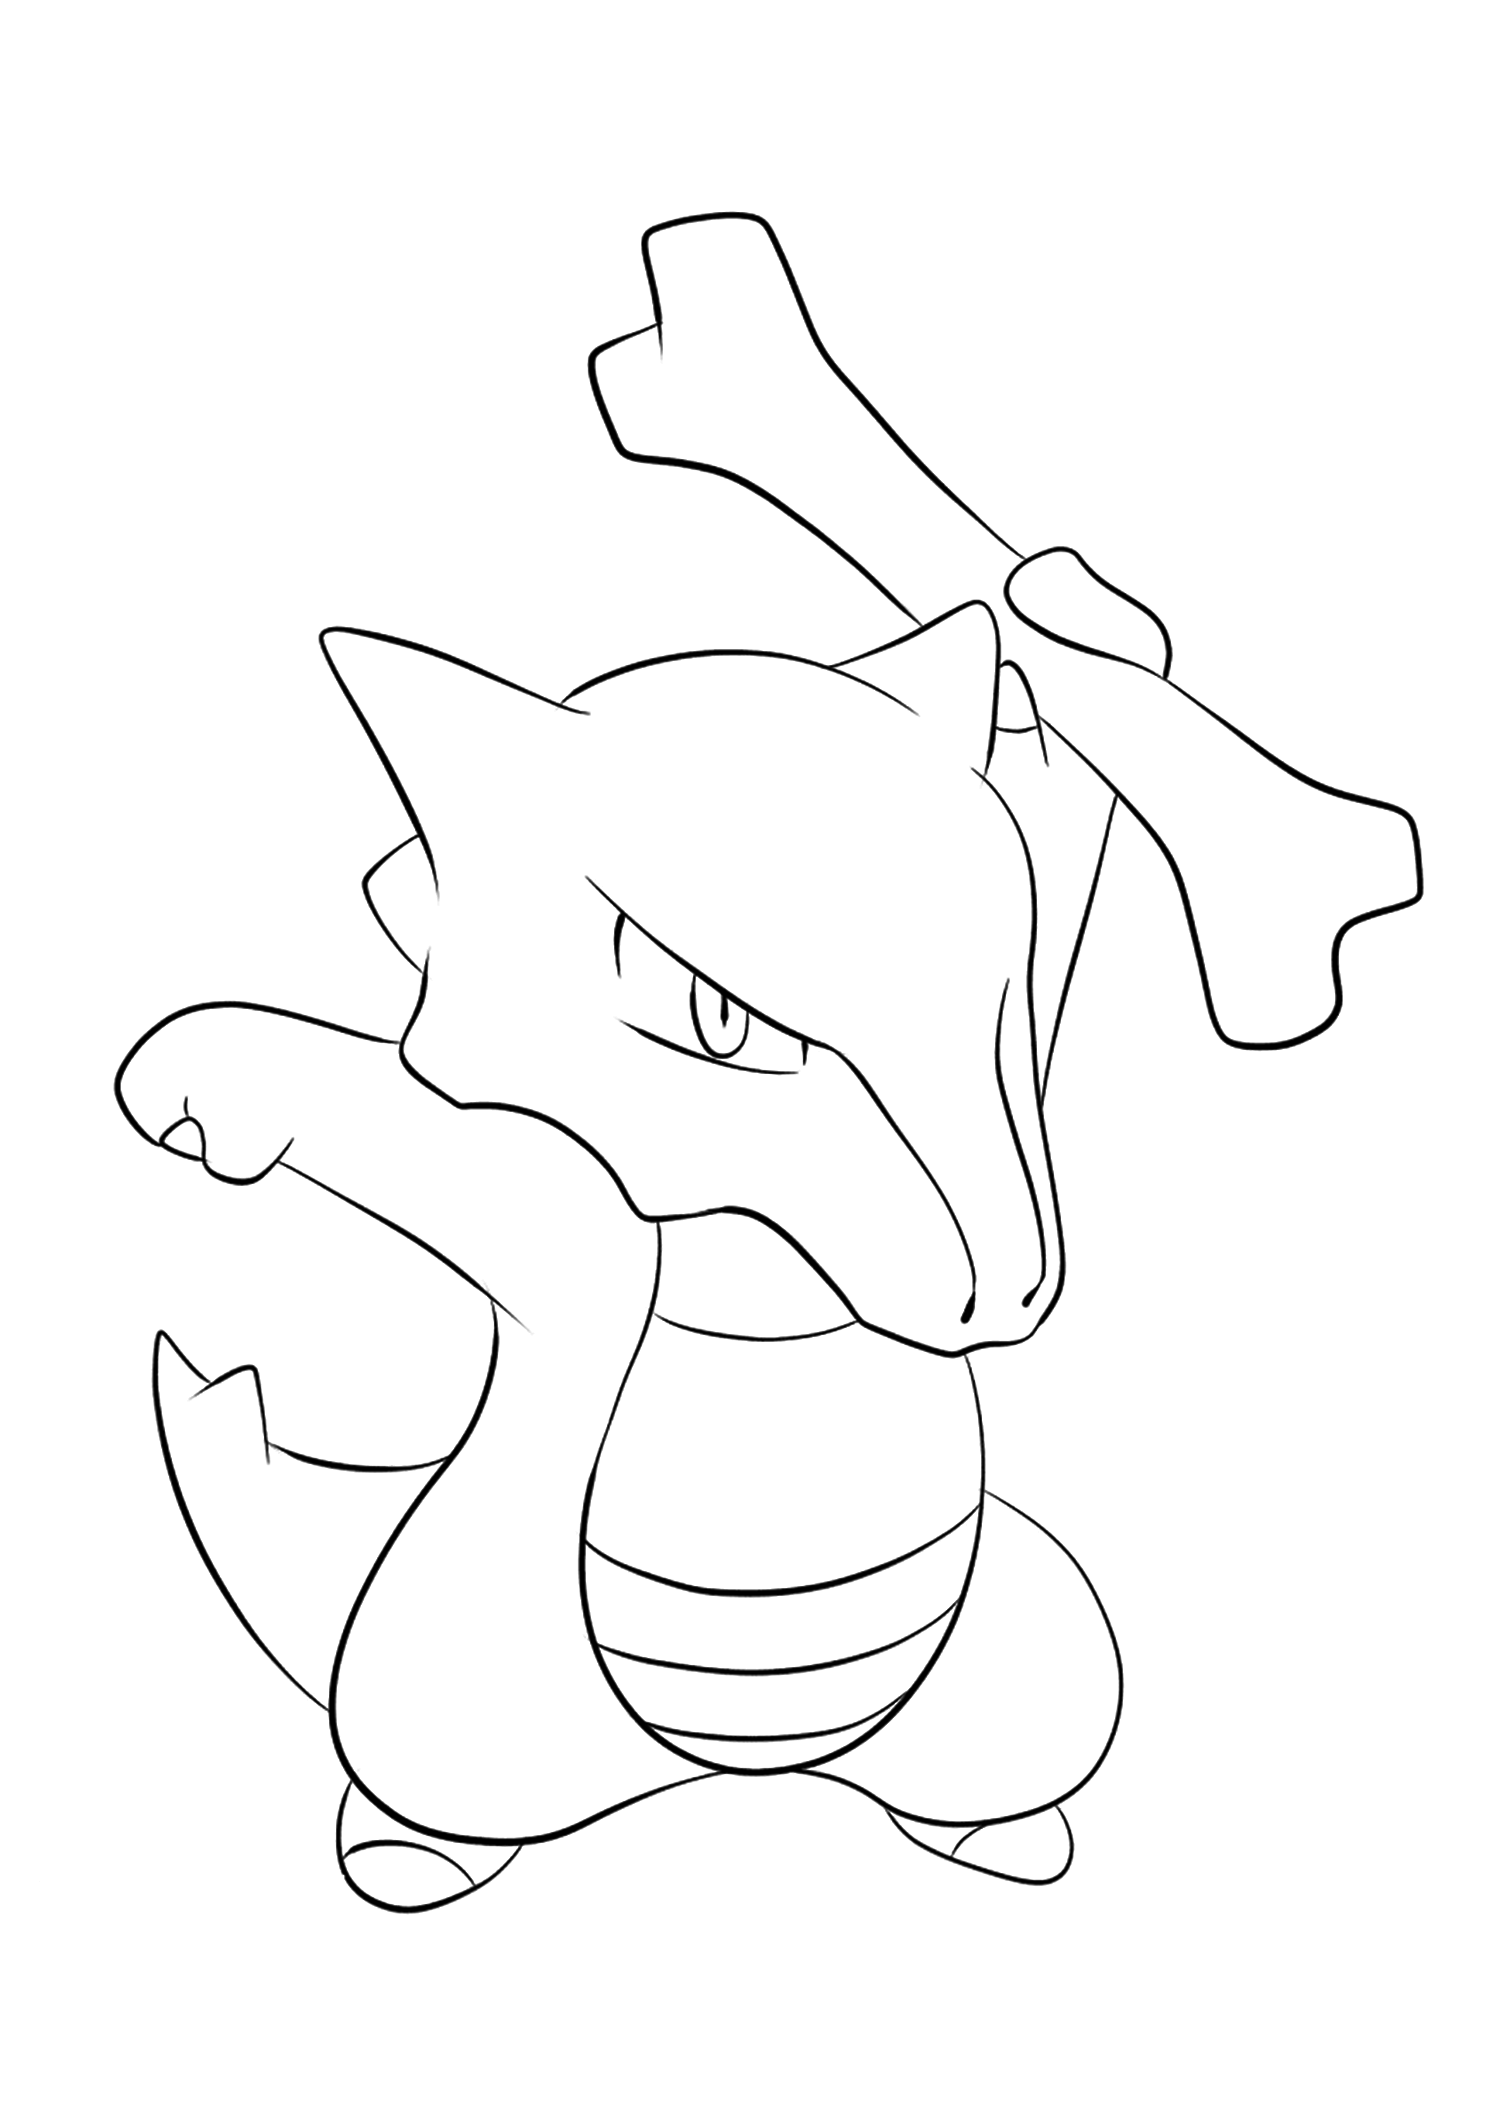 Ossatueur (No.105)Coloriage de Ossatueur (Marowak), Pokémon de Génération I, de type : Feu et SpectreOriginal image credit: Pokemon linearts by Lilly Gerbil on Deviantart.Permission:  All rights reserved © Pokemon company and Ken Sugimori.